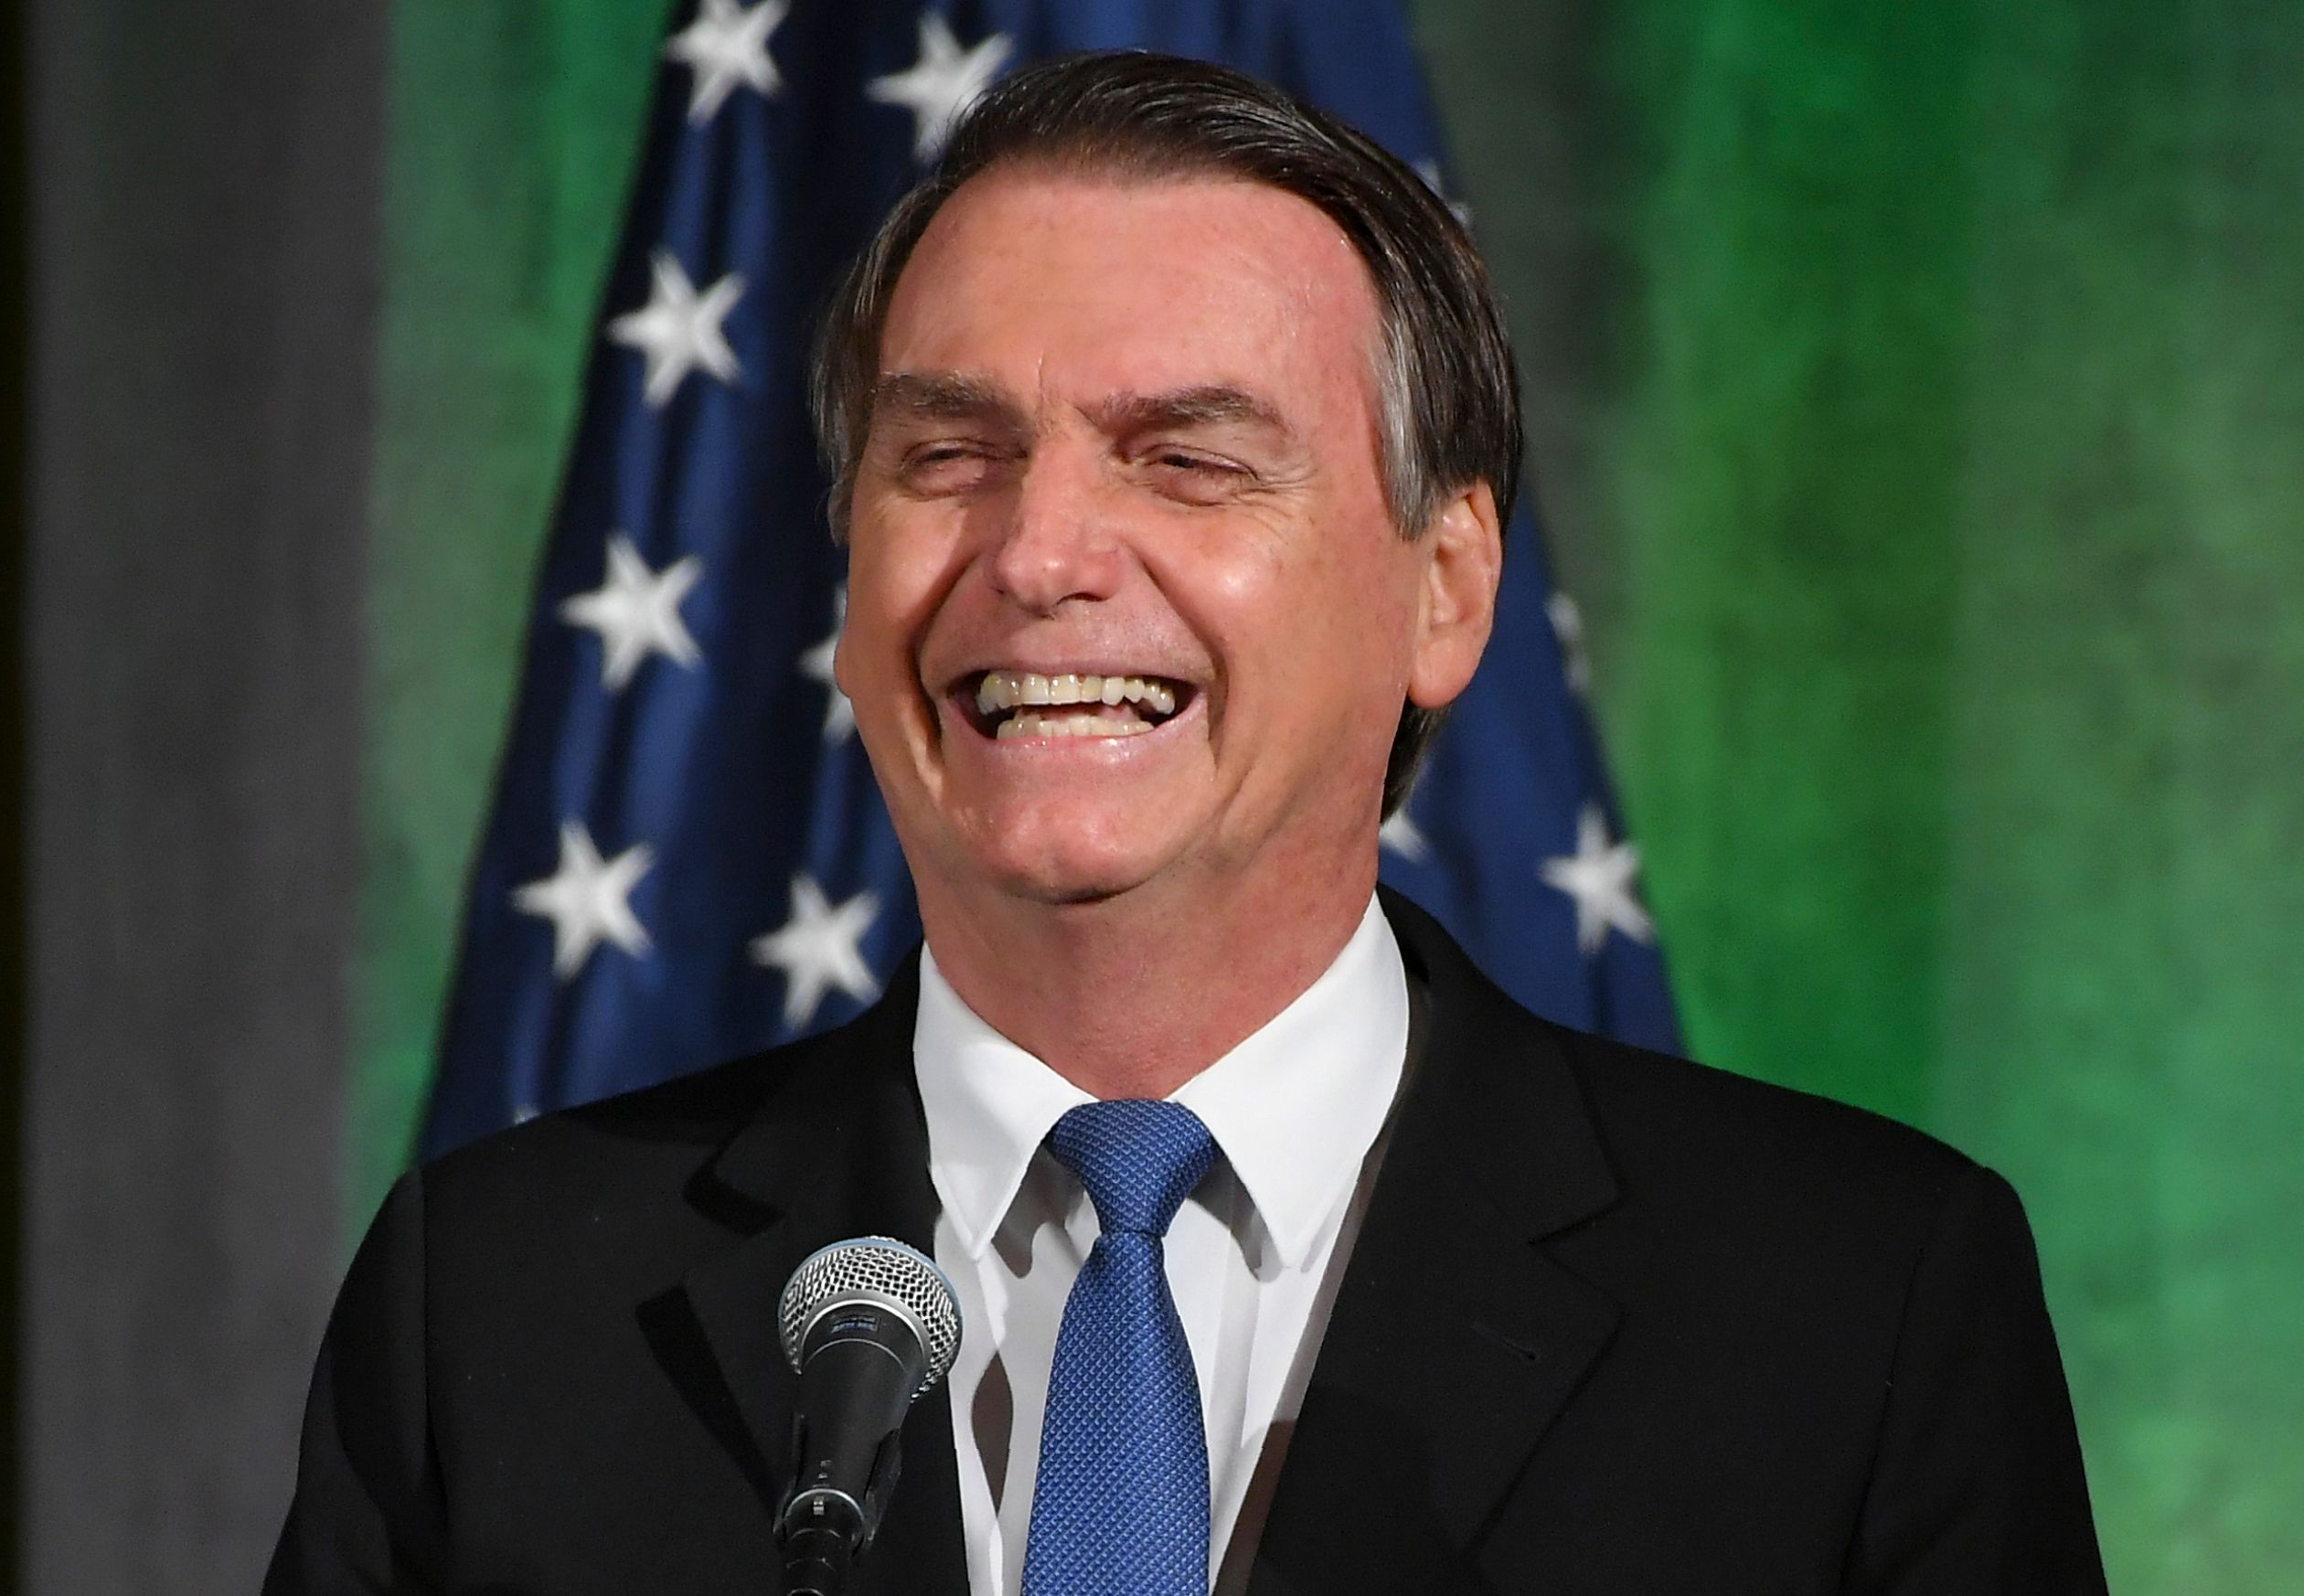 Brazil's President Jair Bolsonaro smiles during a discussion on US-Brazil relations at the US Chamber of Commerce in Washington, DC on March 18, 2019. (Photo by MANDEL NGAN / AFP)